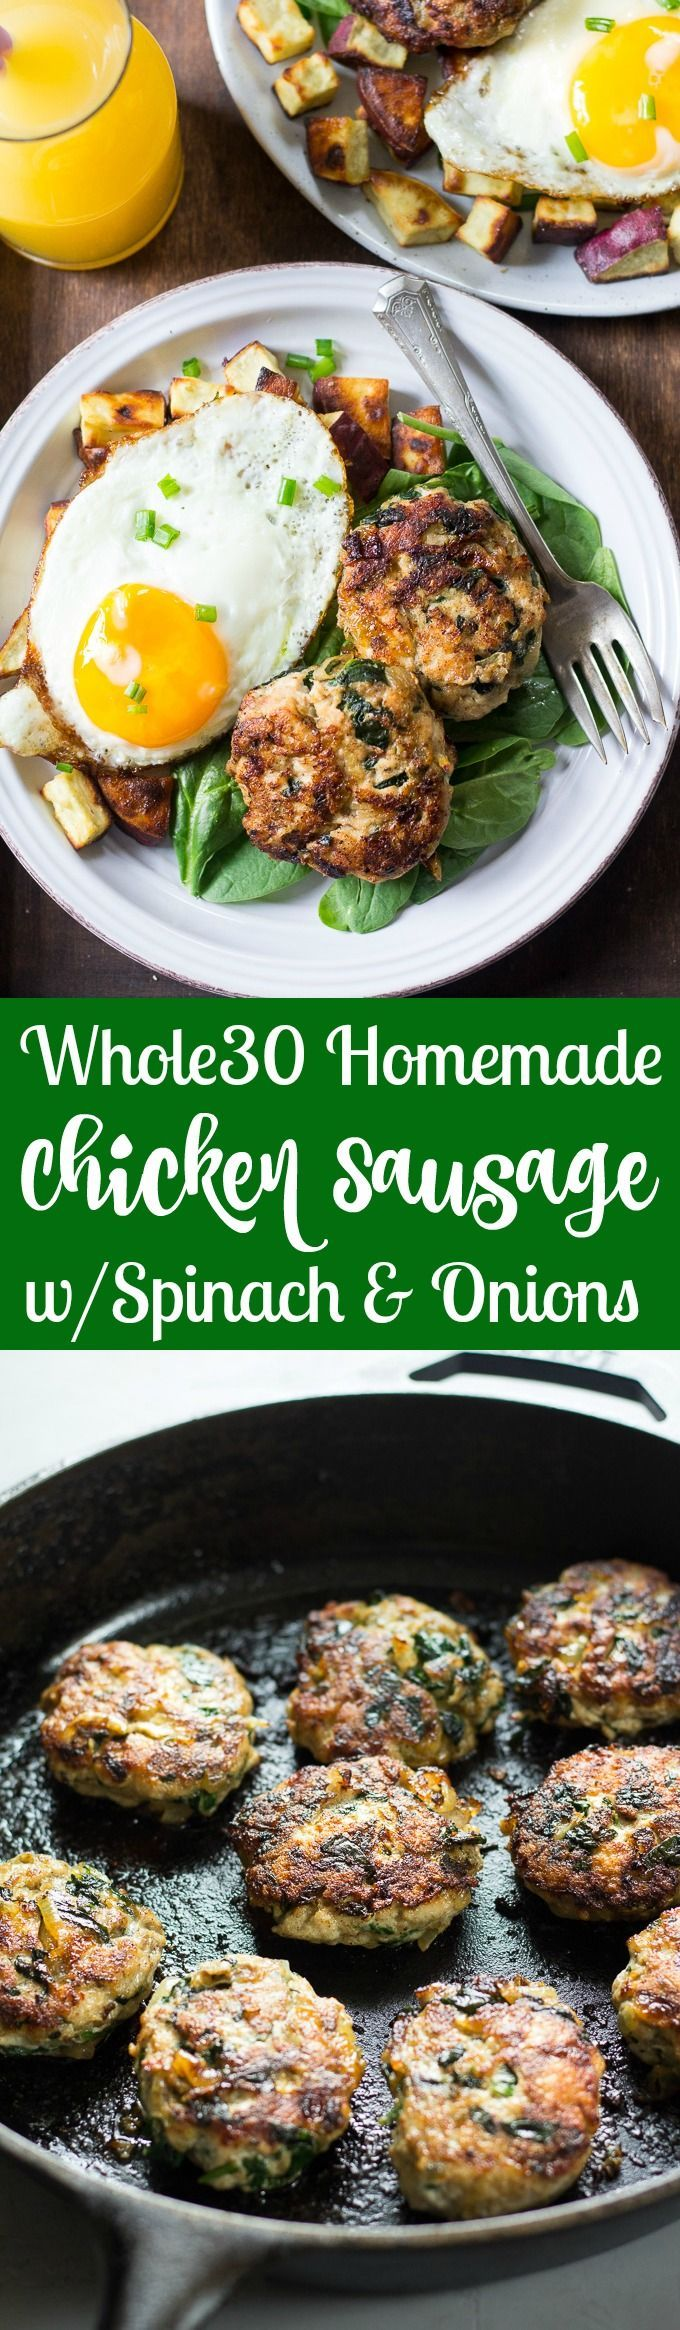 Easy Homemade Chicken Sausage Patties with Spinach and Caramelized Onions that you can make ahead of time and serve with any meal!  They're made with real, whole ingredients and are sugar free, Paleo and Whole30 compliant.